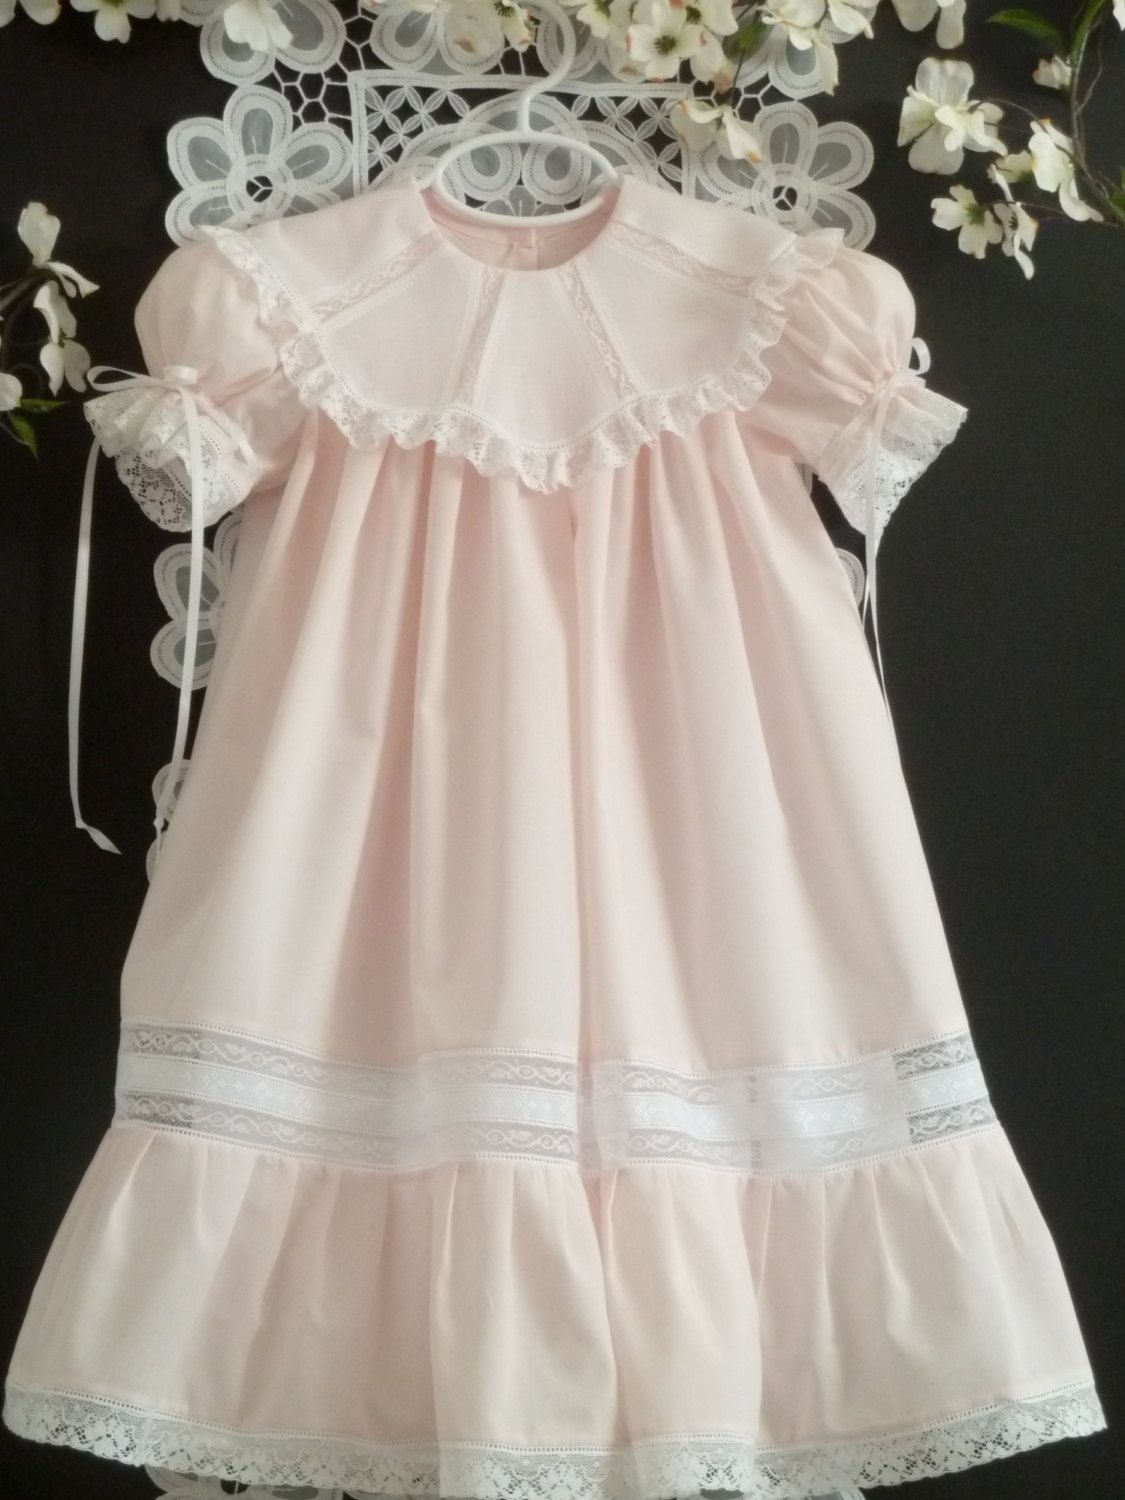 Heirloom Girls Dress With White Voile Scalloped Collar